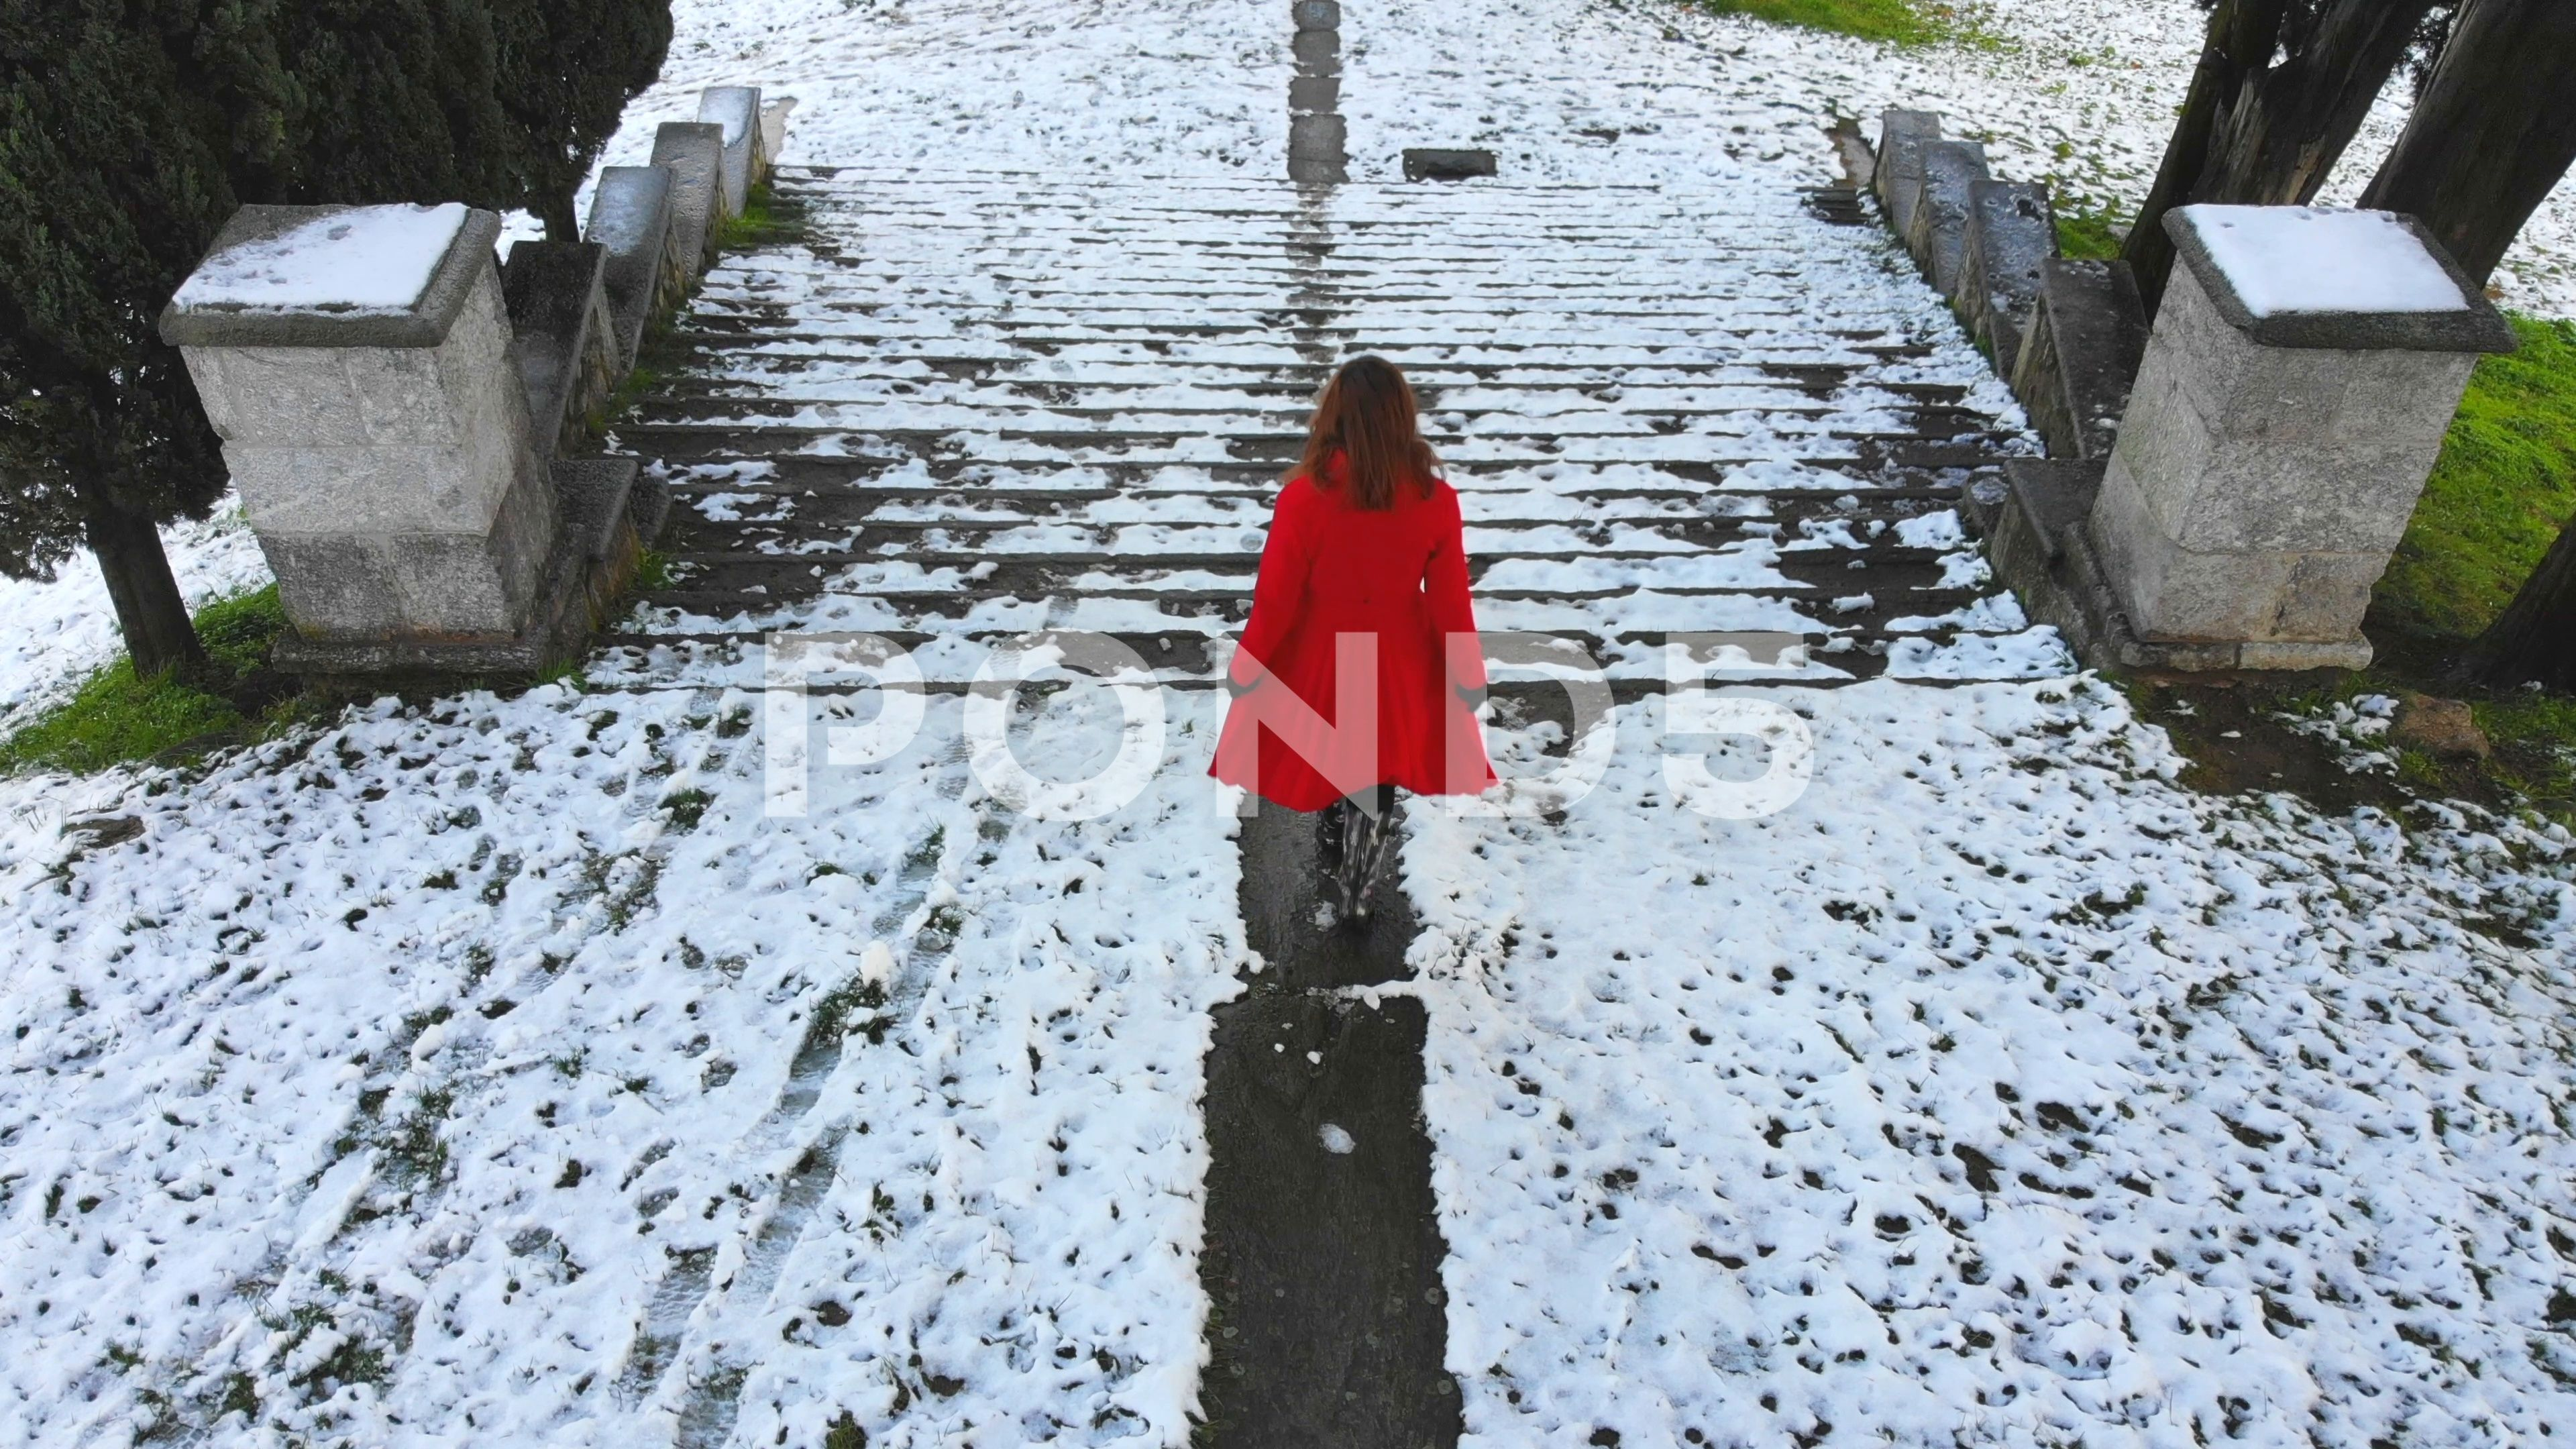 The Woman In The Red Coat Goes Down An Ancient Staircase Stock